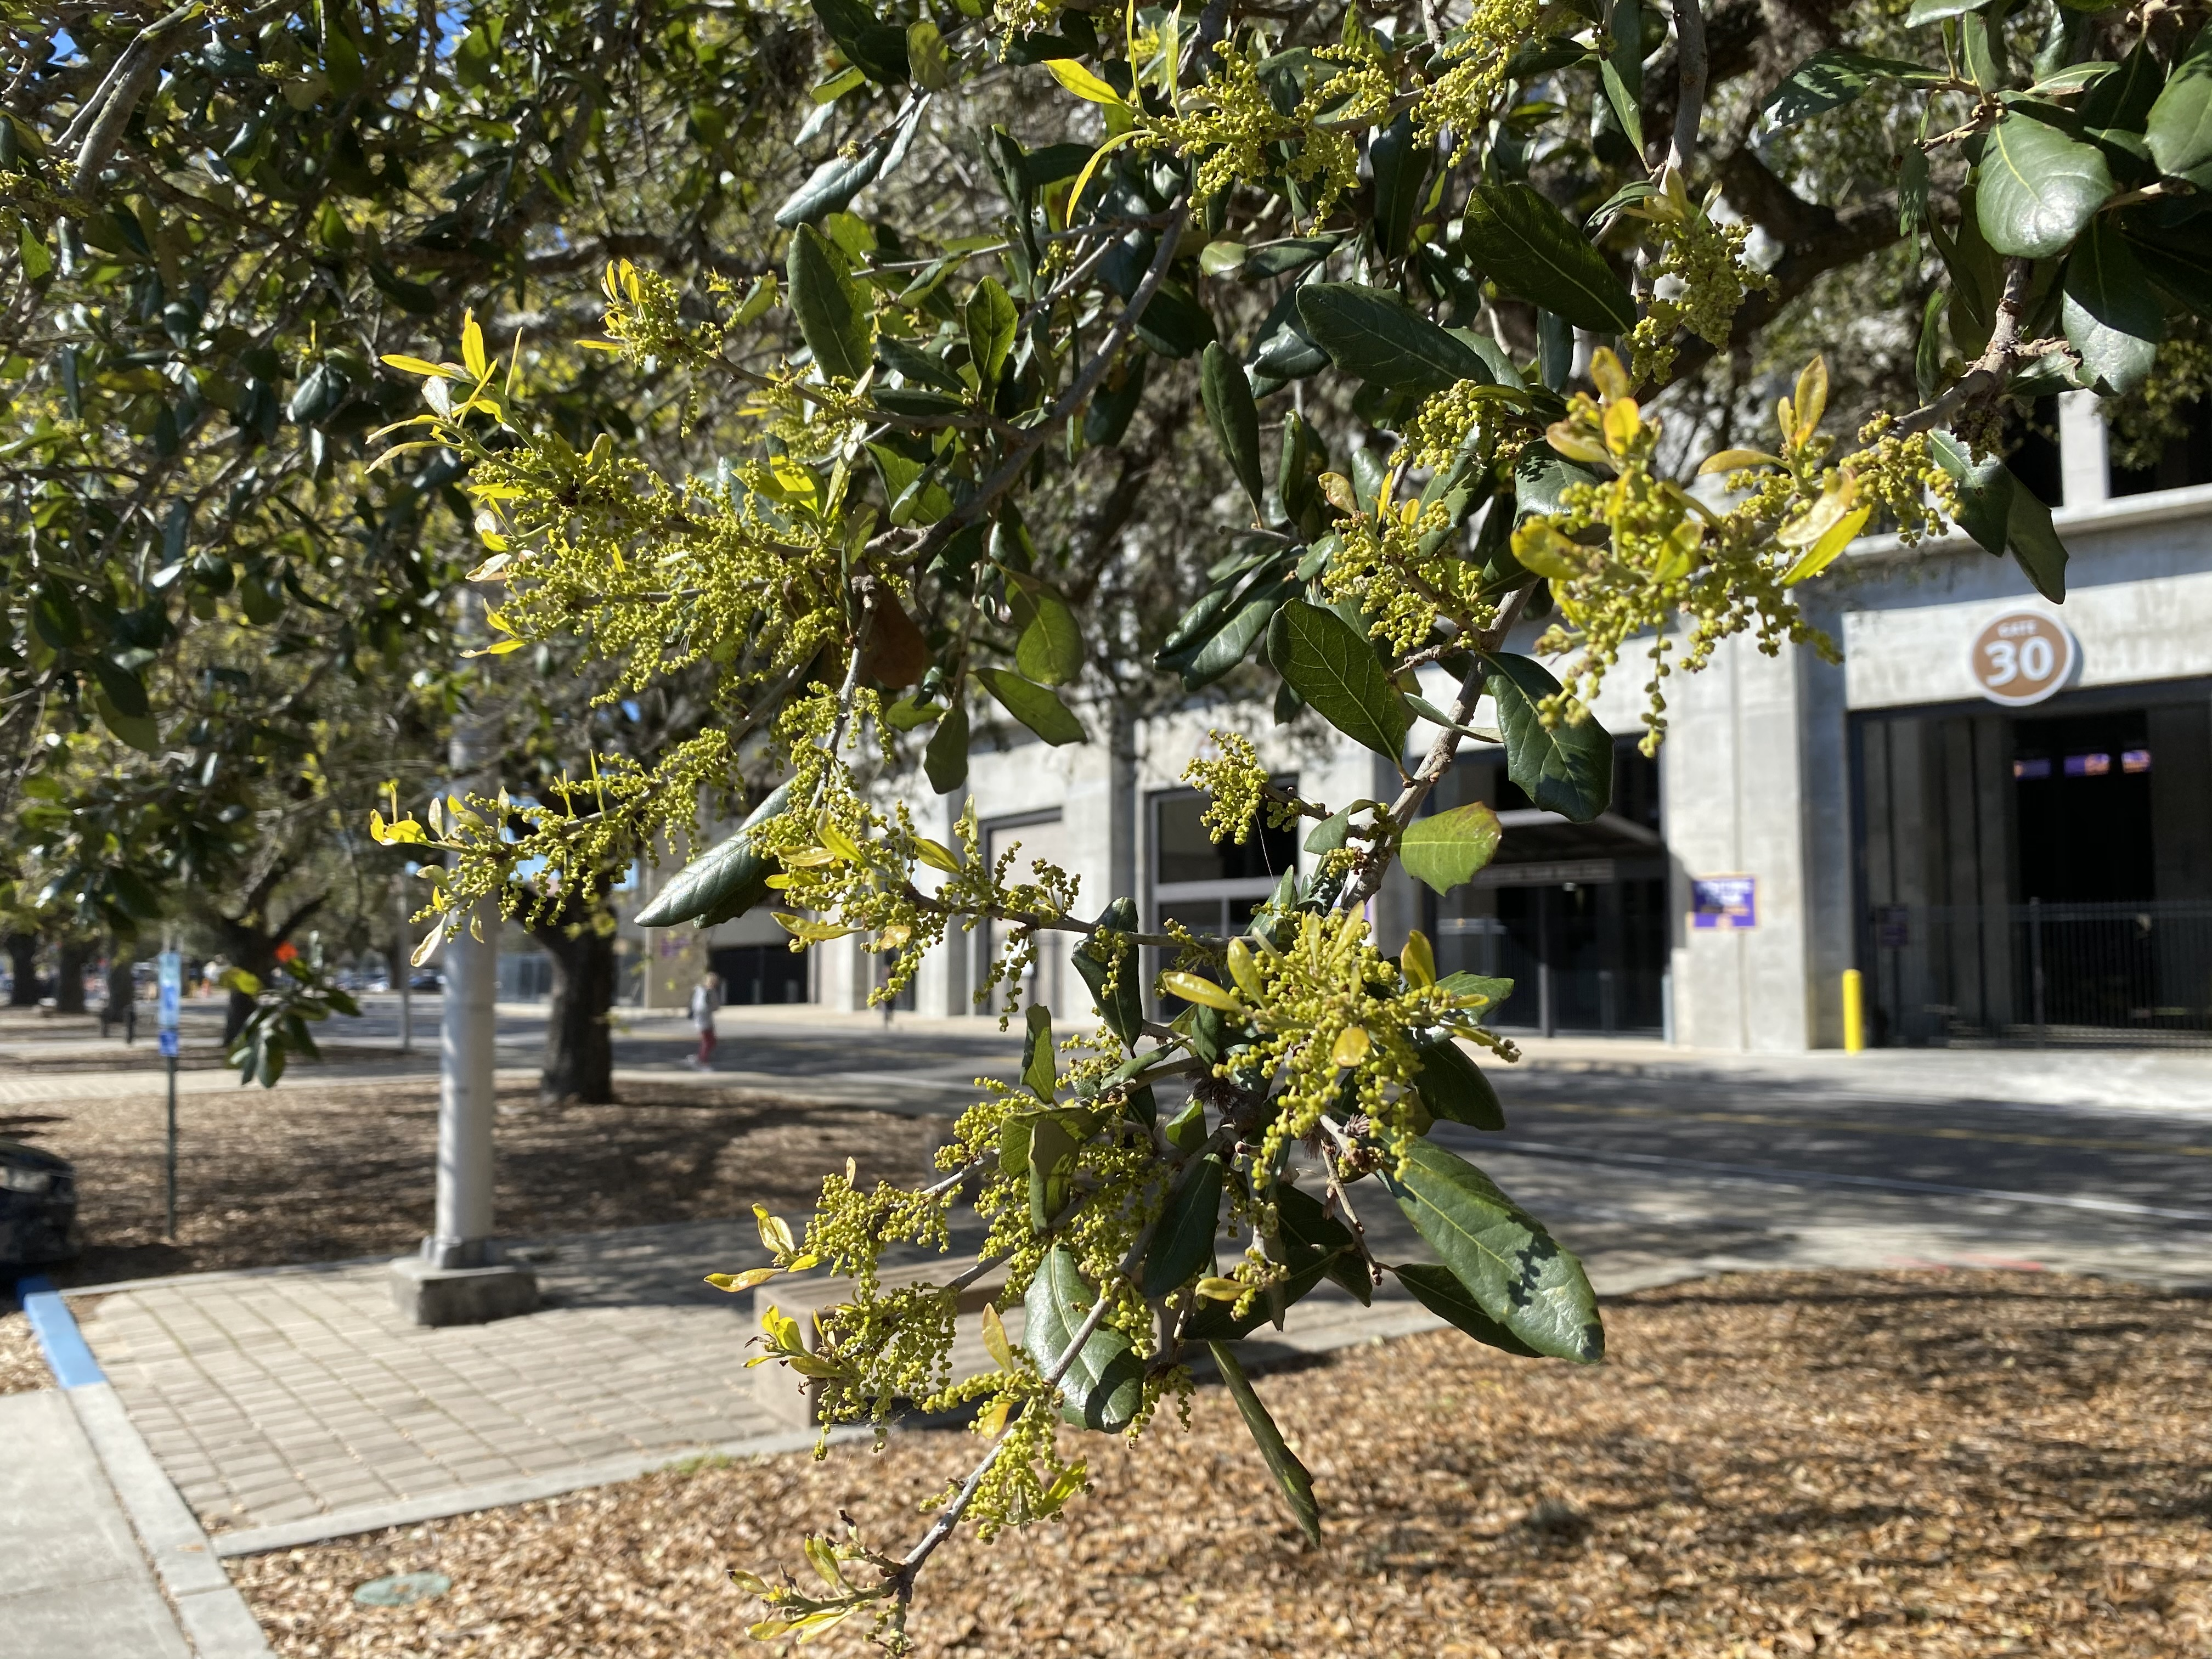 When shedding leaves live oaks simultaneously produce catkins or male flowers that creates copious amounts of pollen..JPG thumbnail